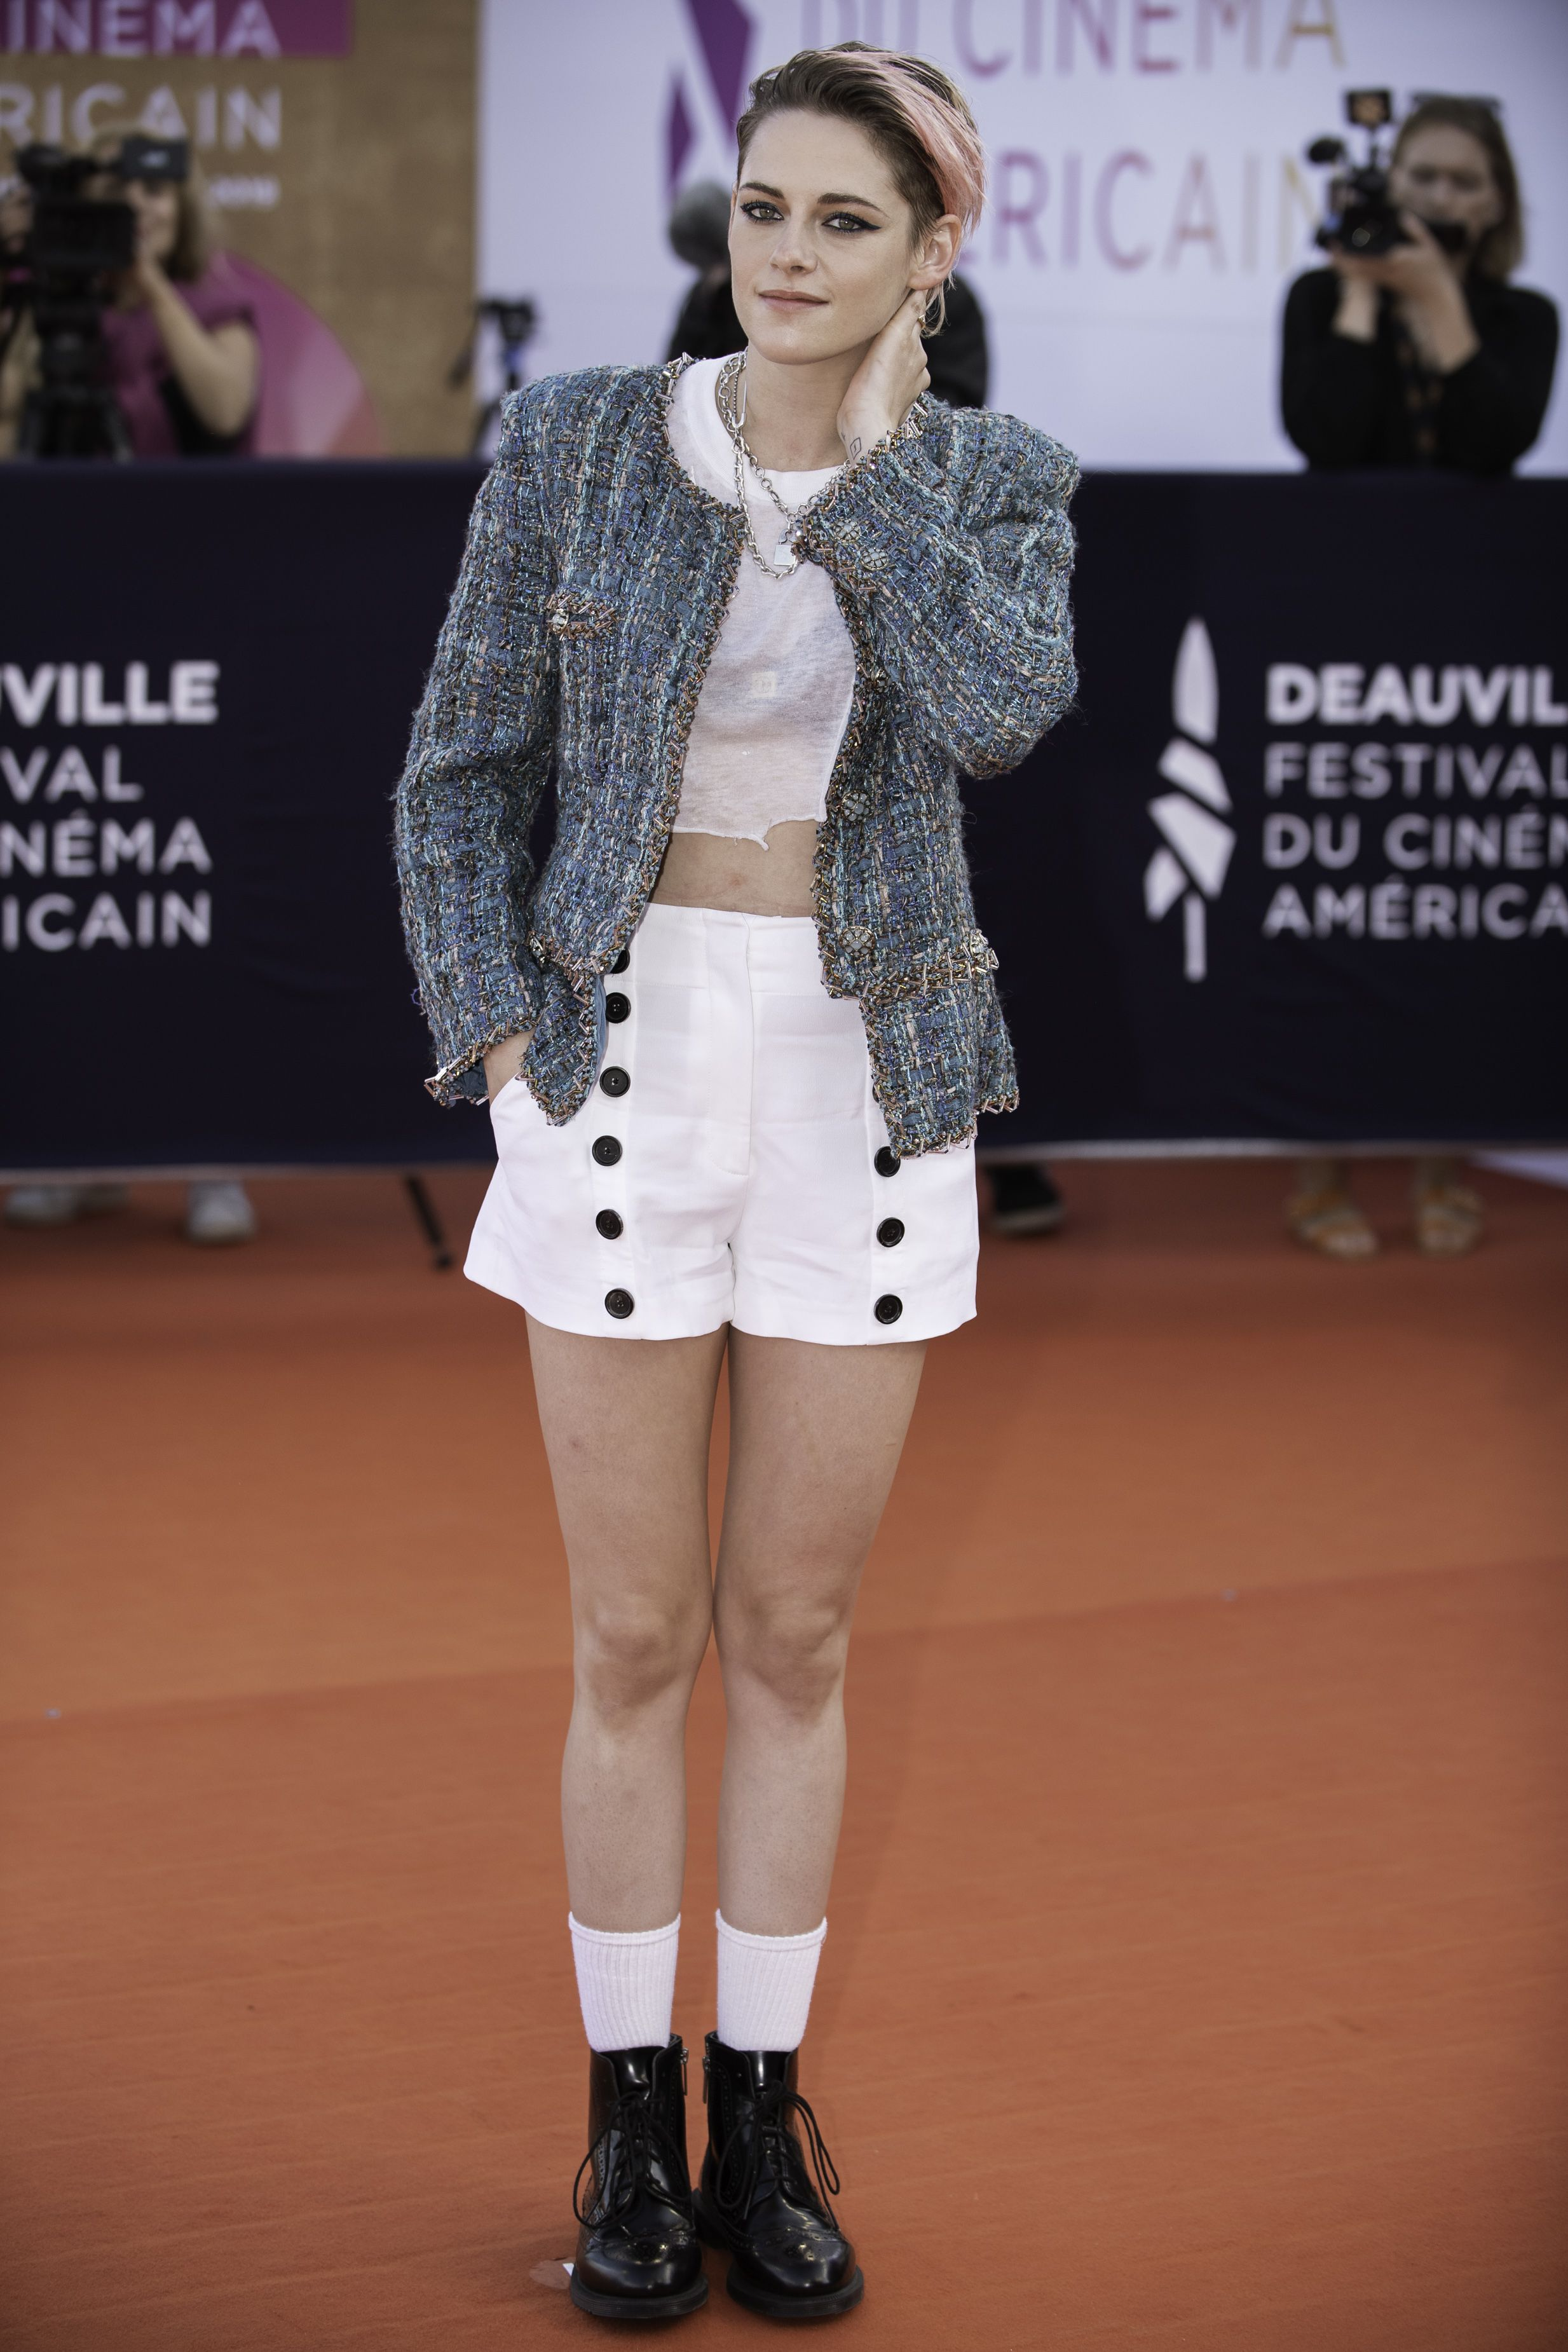 Kristen Stewart Dressed Up Her Shorts with Chanel on the Red Carpet